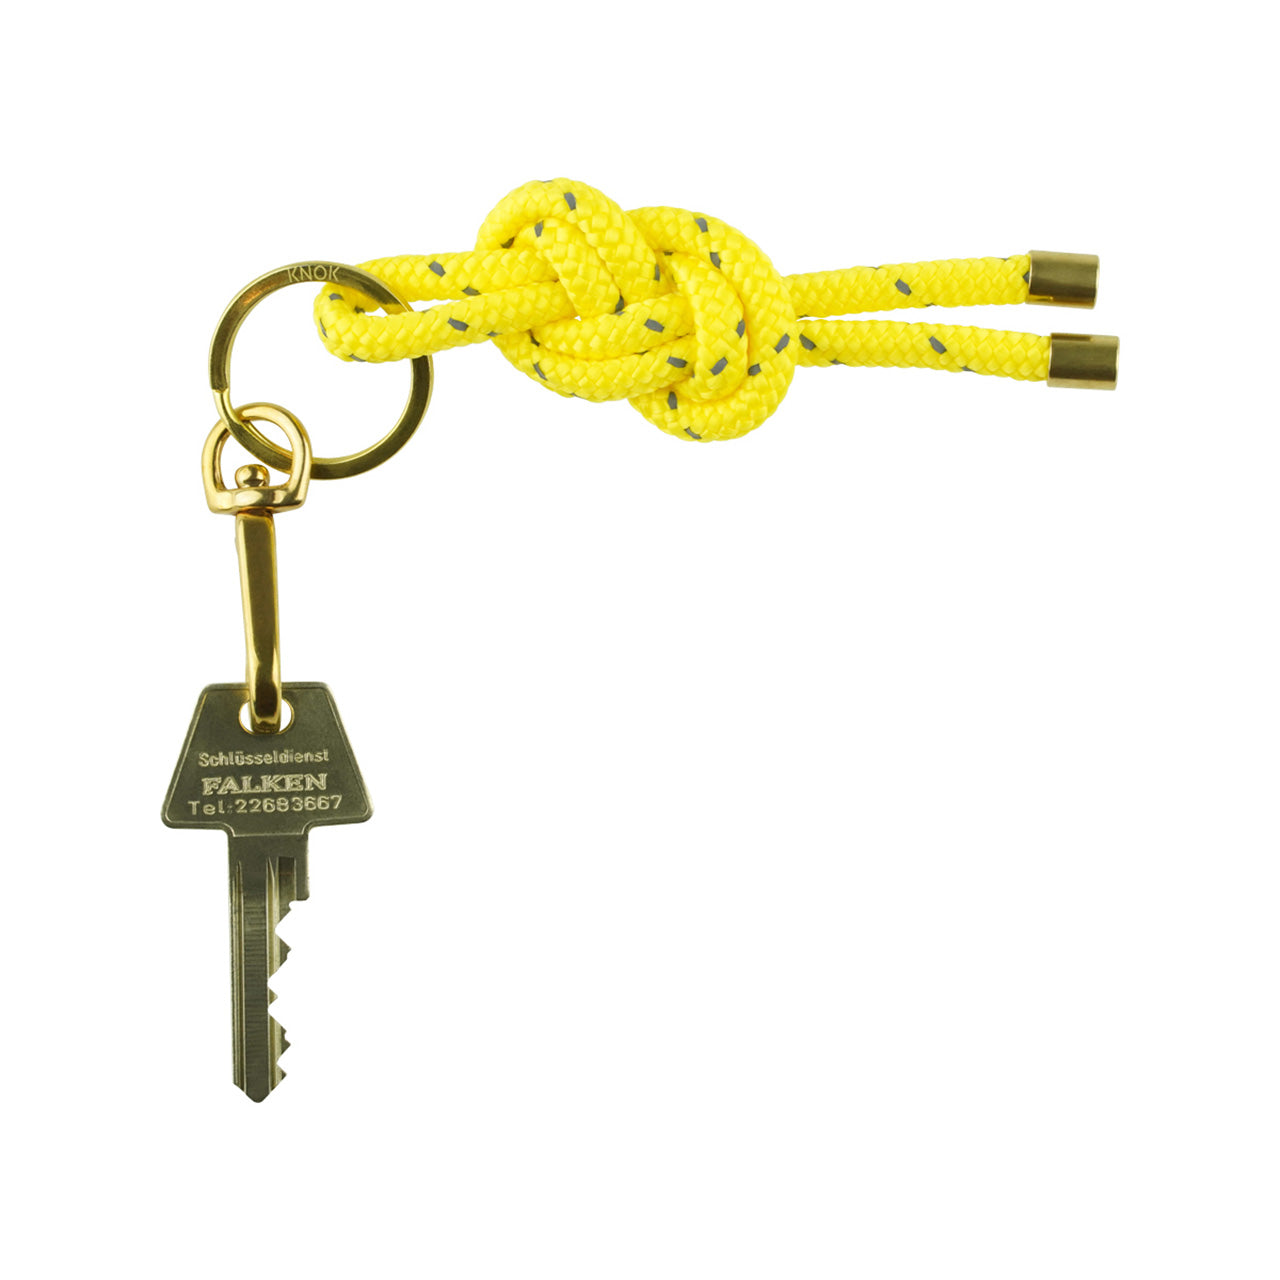 KNOK-KEY-KNOT-Yellow reflect